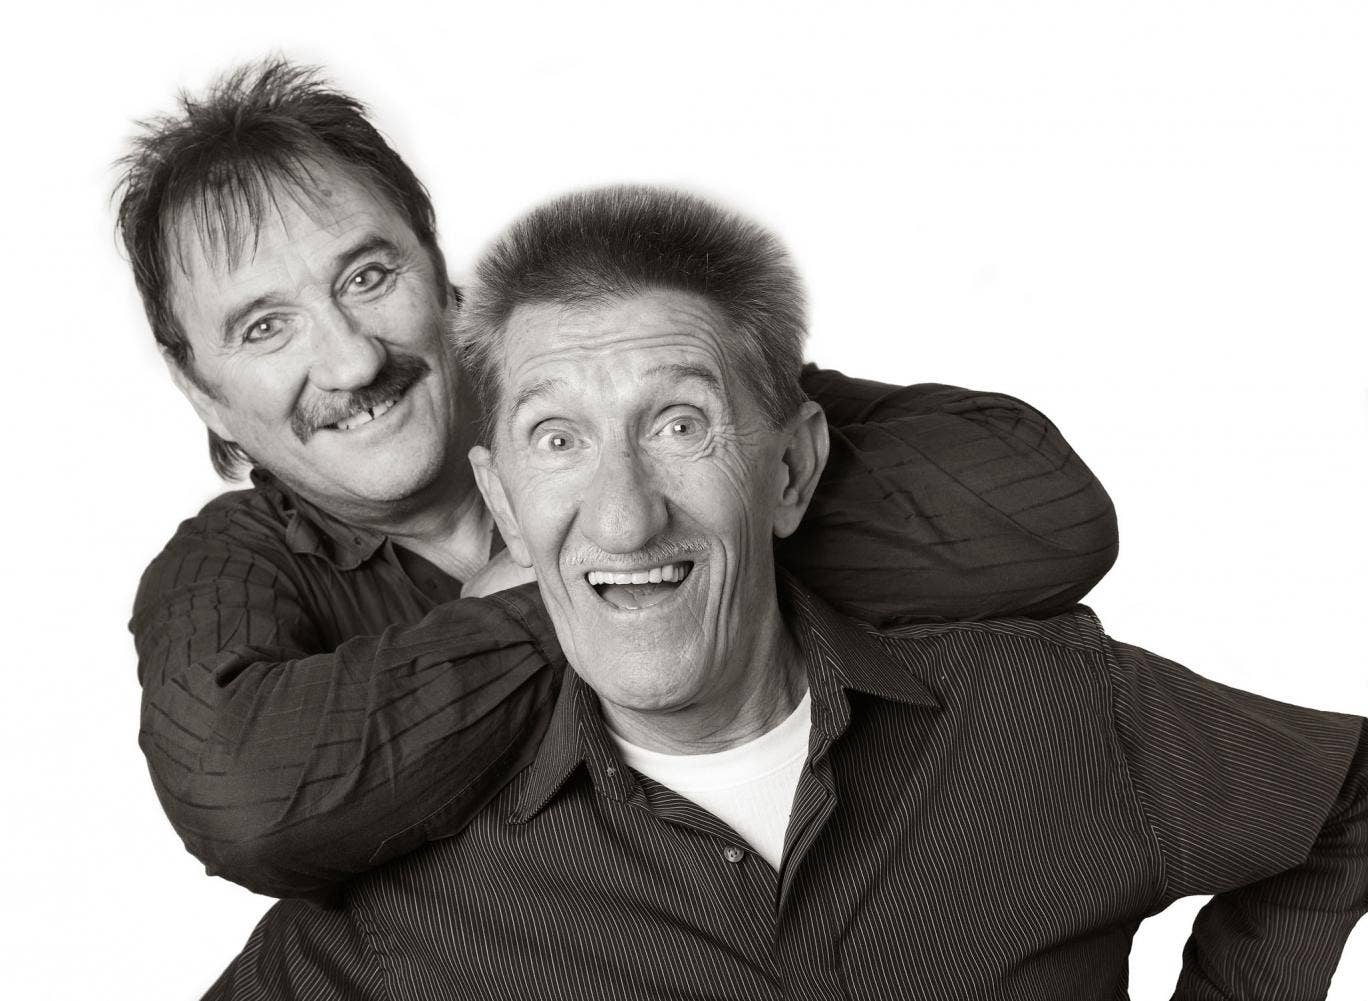 """The brothers, known for their catchphrase """"To me, to you"""", will sit it on lunchtime news conferences at Northern Echo"""